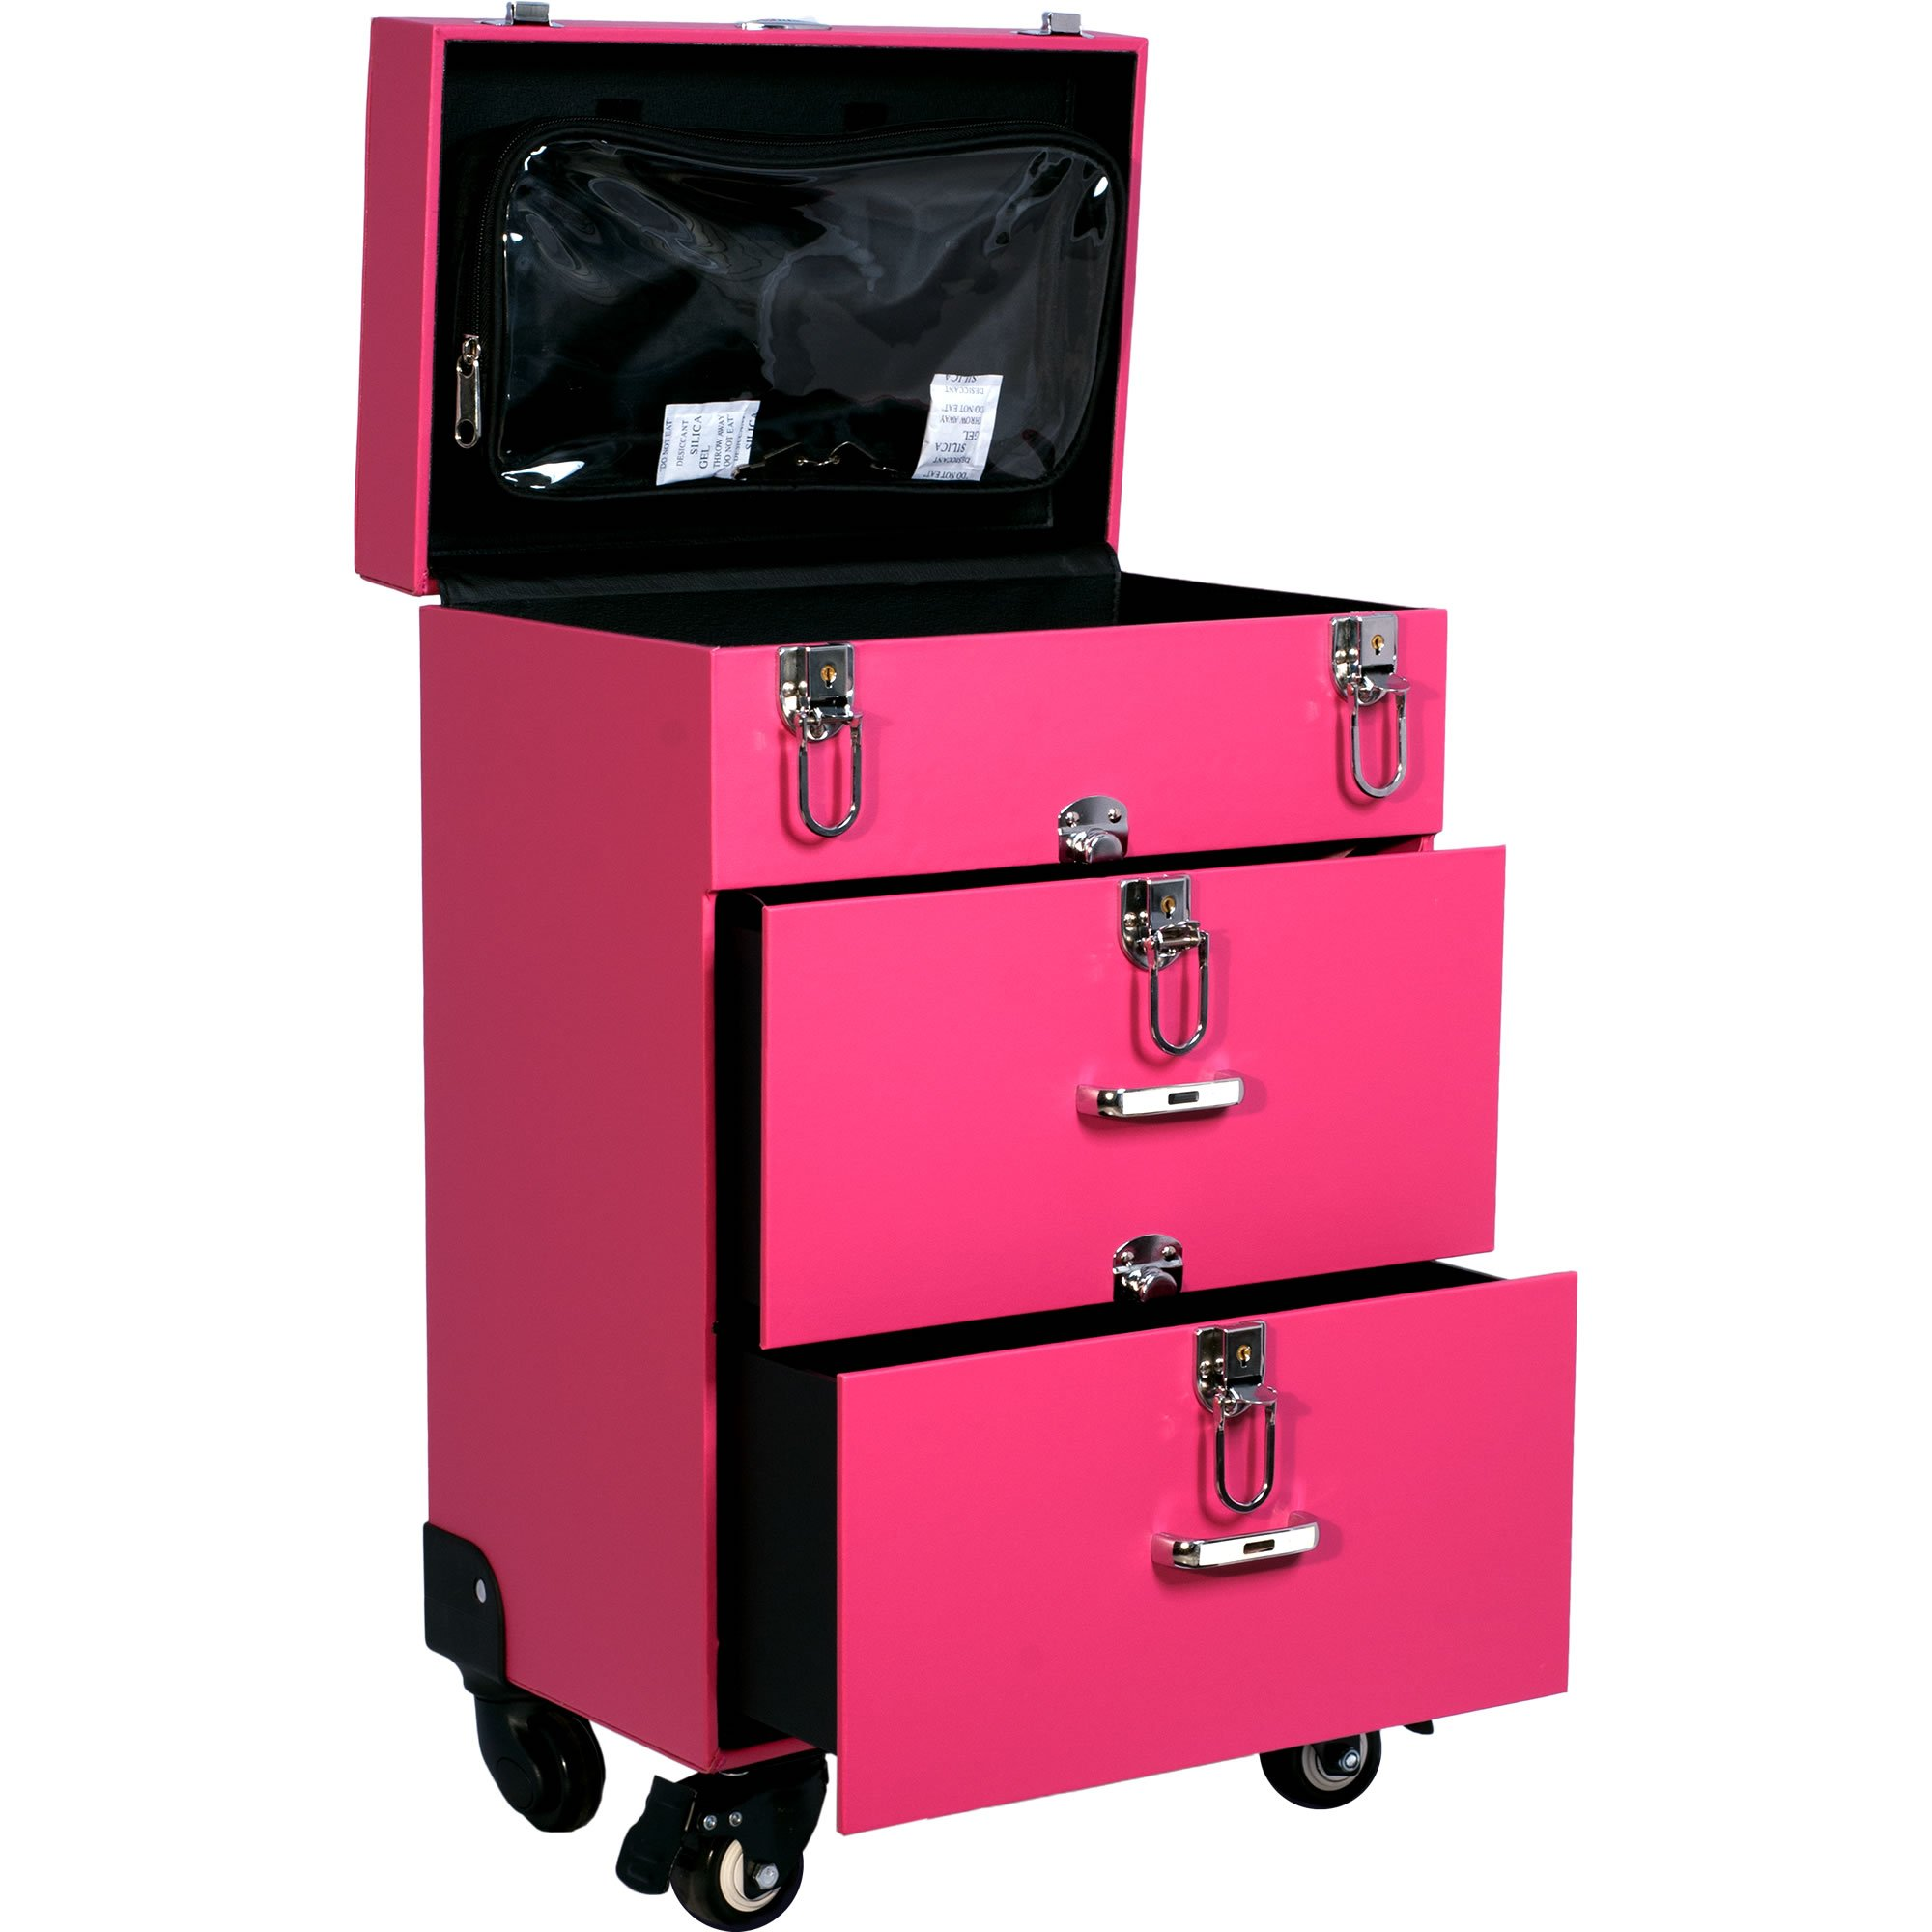 Sunrise Faux Leather Professional Nail Artistry 4 Wheel Rolling Makeup Case, Pink by SunRise (Image #1)